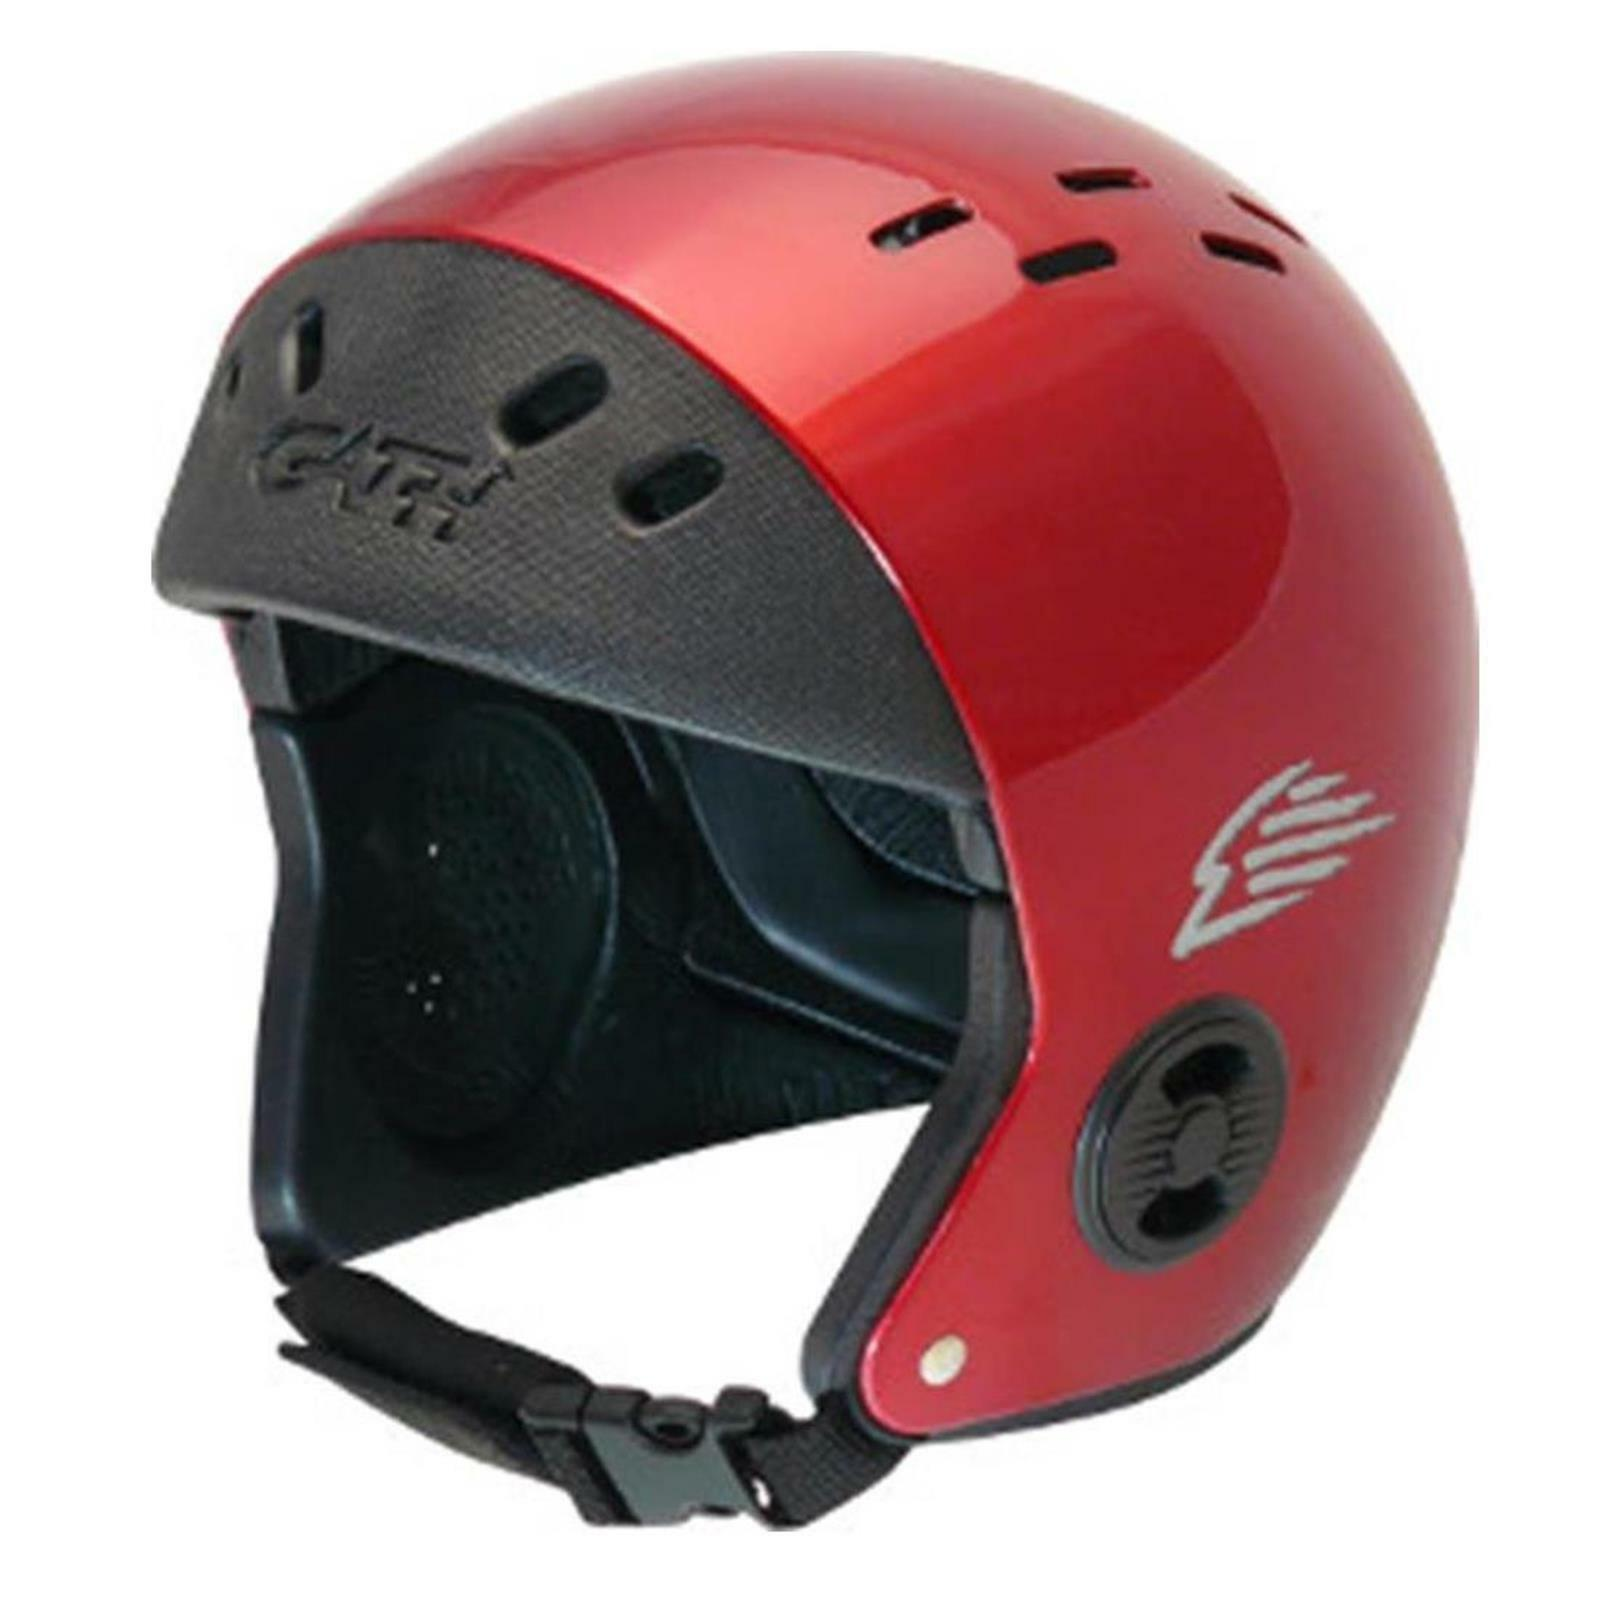 GATH Helm Standard L  safety safety  ROT gloss 40ad6d